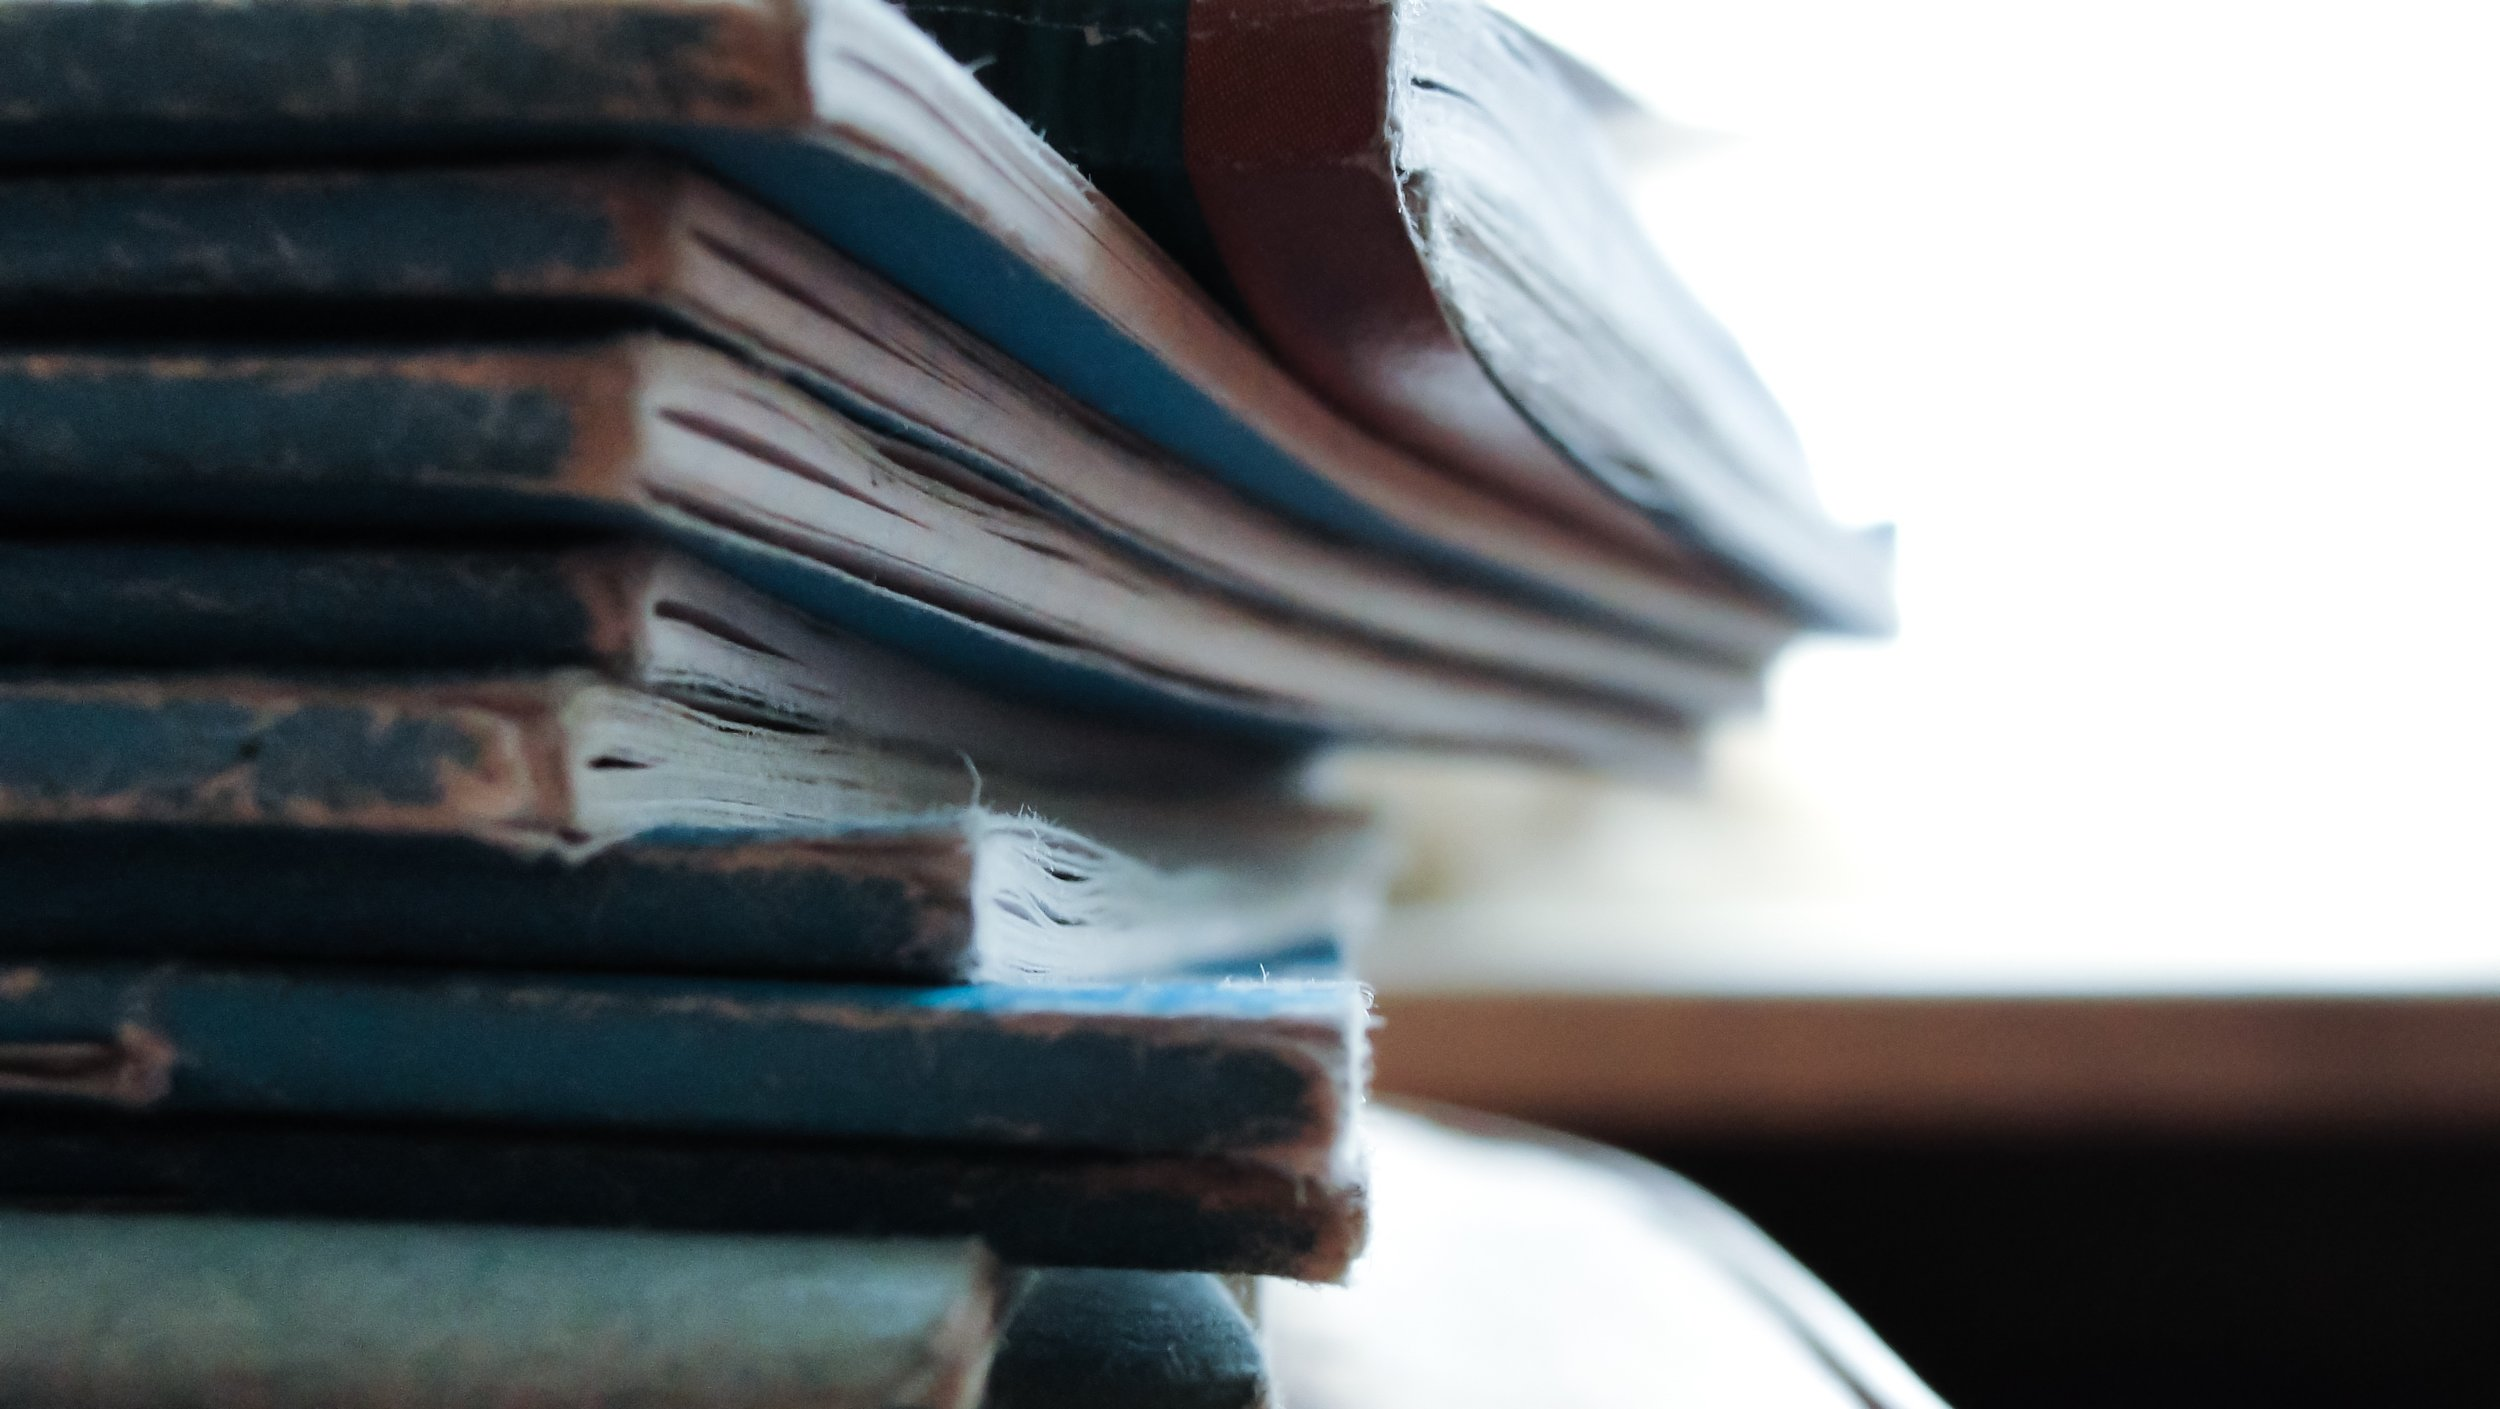 How to choose the best journaling method for your lifestyle